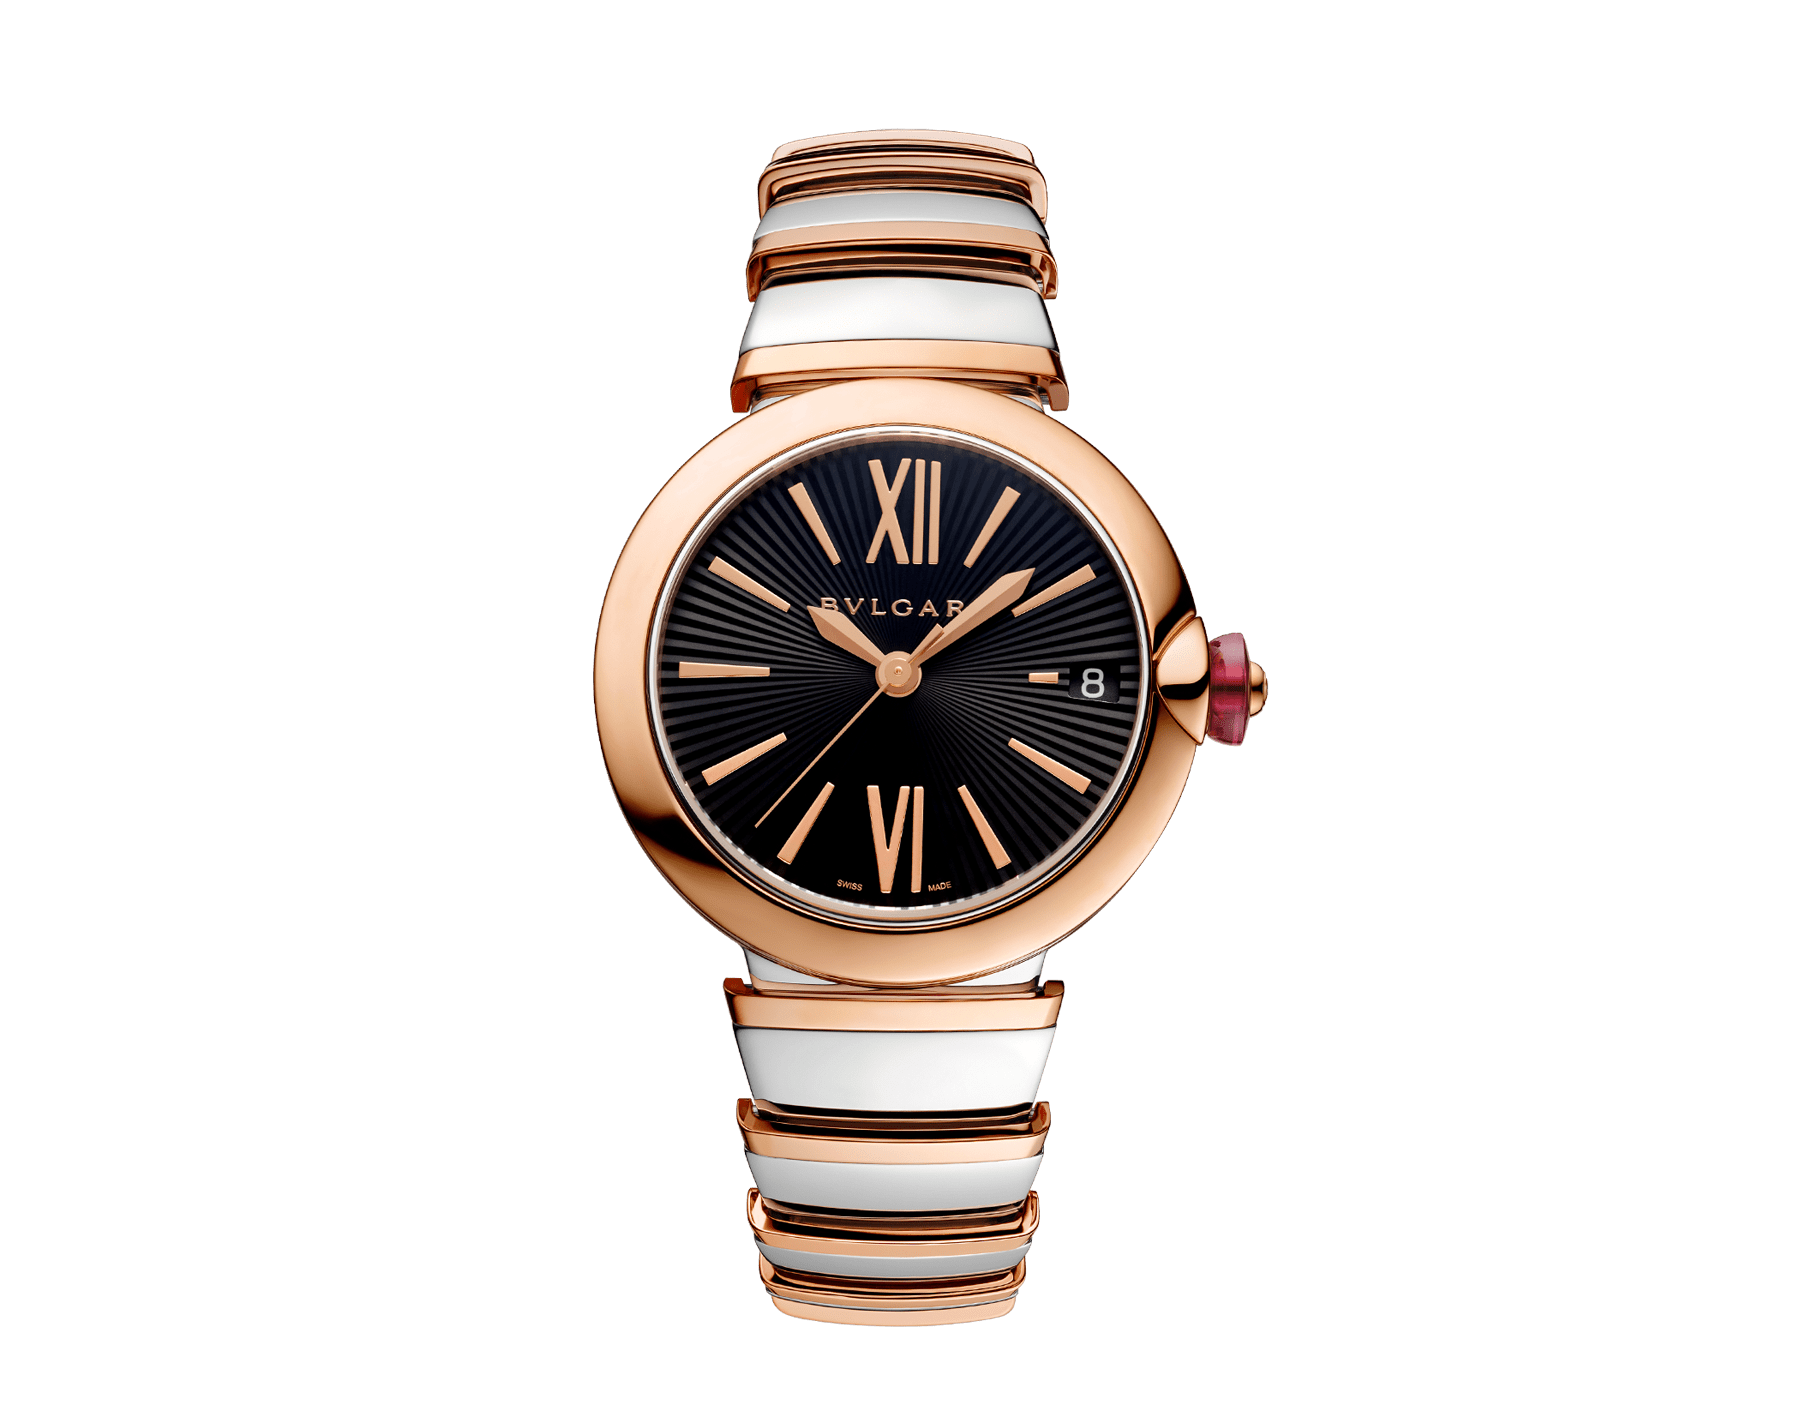 LVCEA watch in 18kt rose gold and stainless steel case and bracelet, with black opaline dial. 102192 image 1